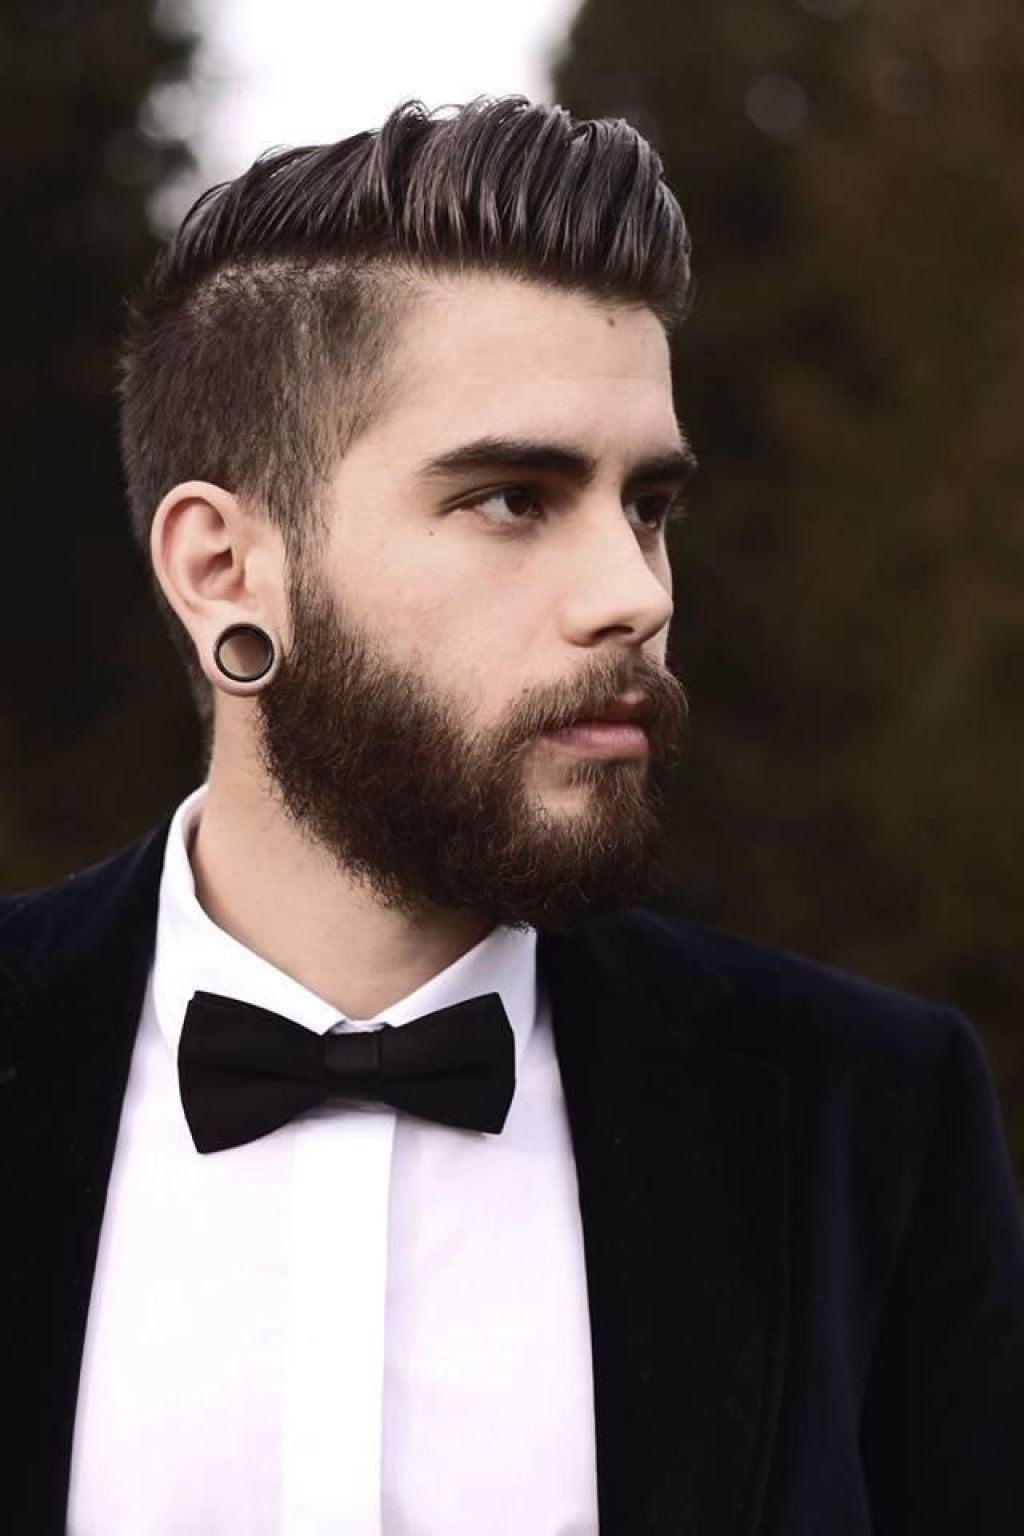 hipster haircuts men 2015 undercut style with big ear